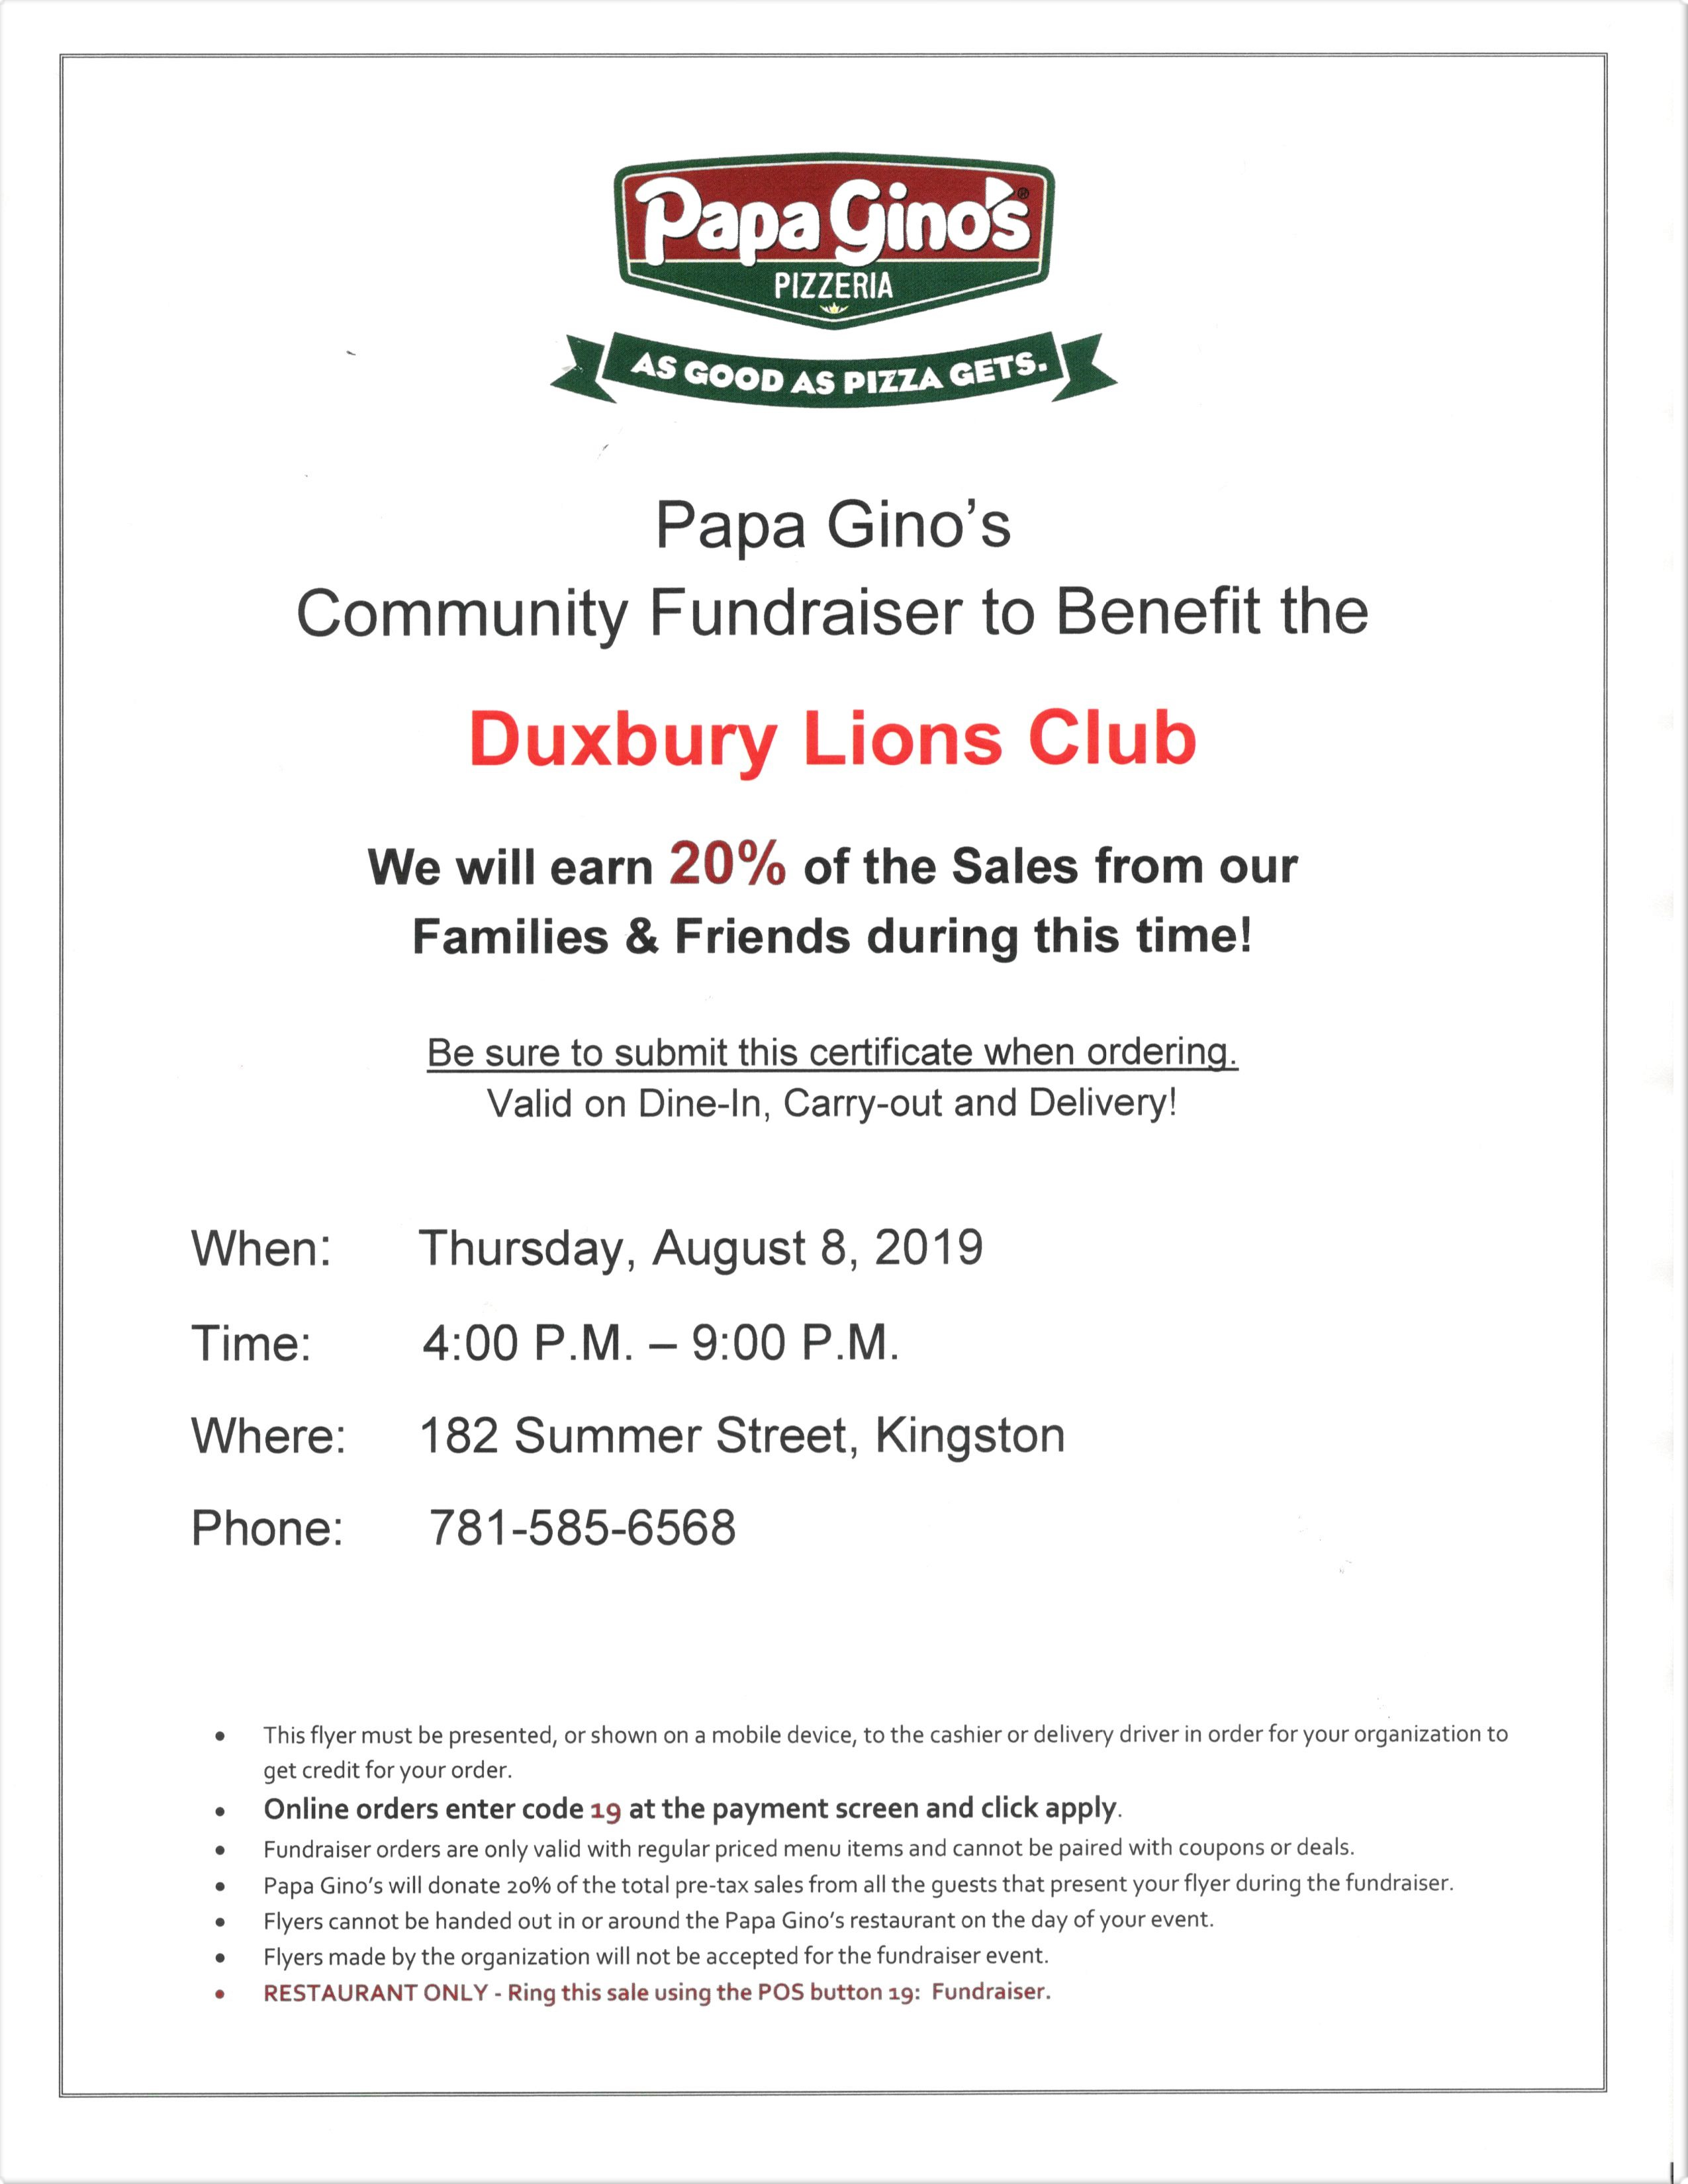 GET YOUR PIZZA, WATCH PATRIOTS KICK-OFF THE SEASON & SUPPORT DUXBURY LIONS CLUB!!!